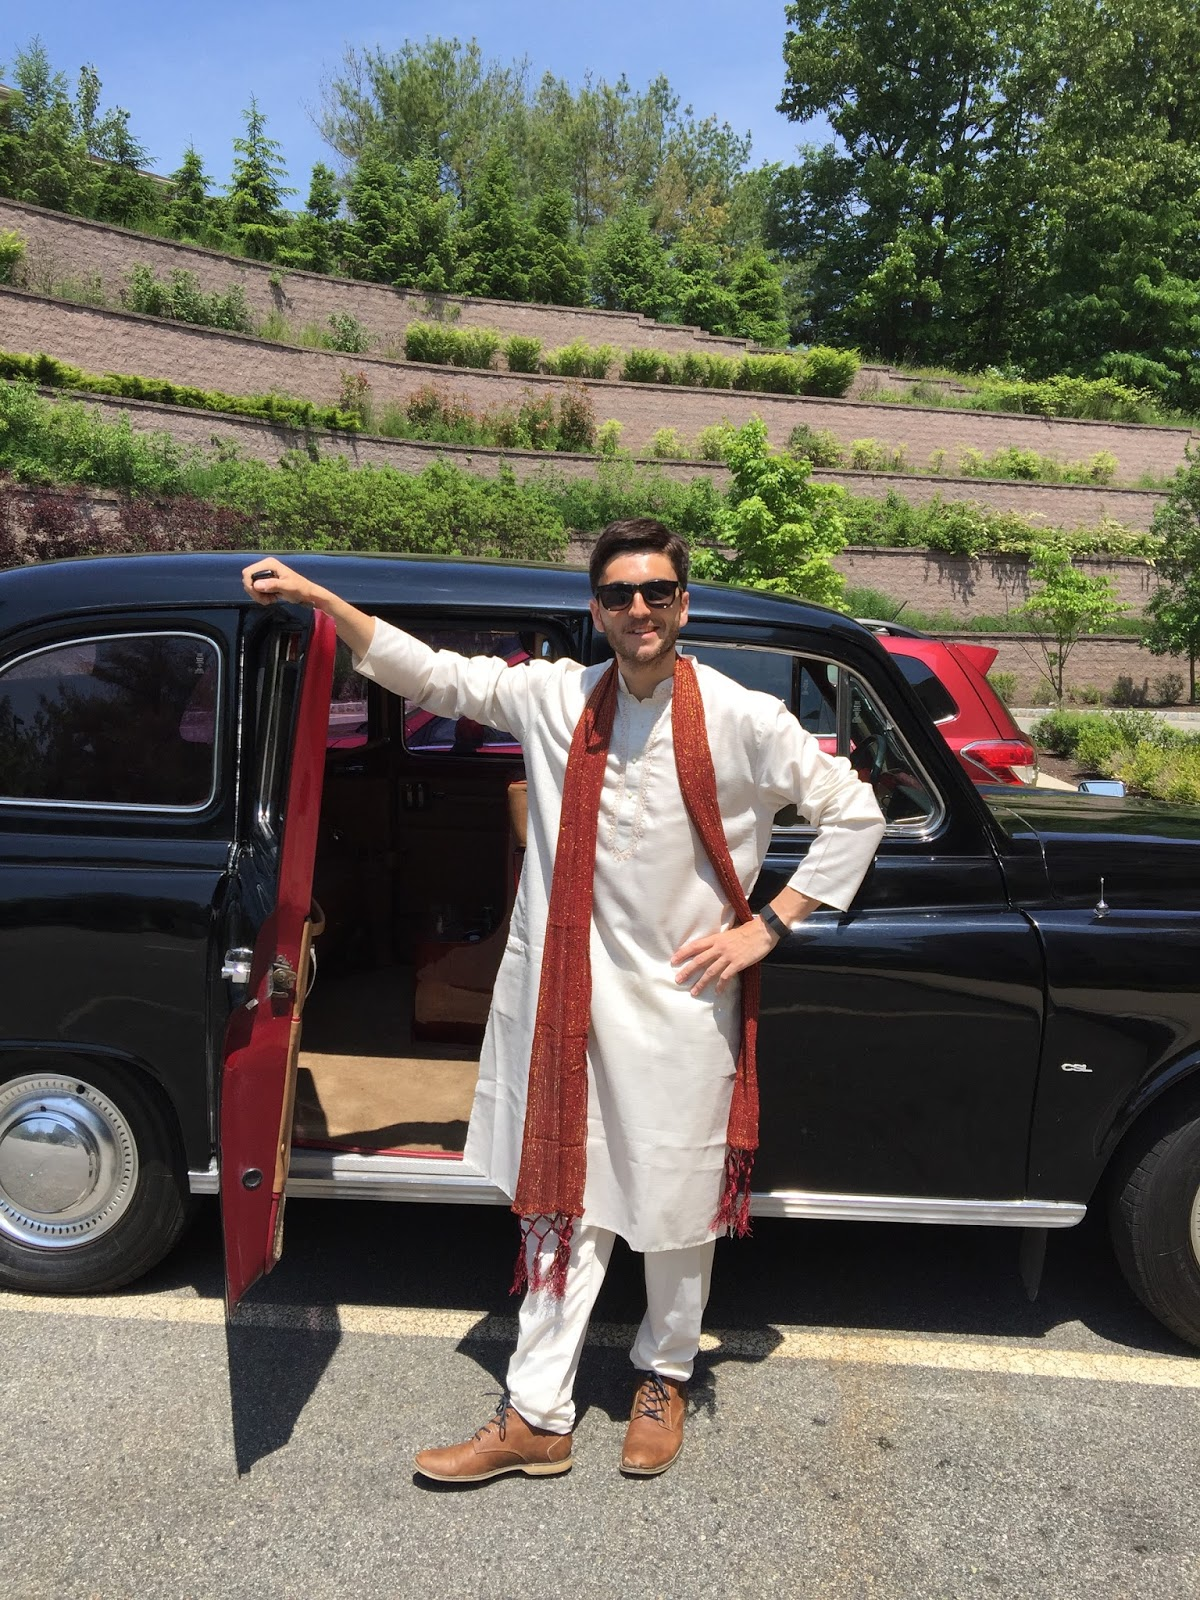 Indian Bride, British Groom and a Vintage Birtish London Taxi Cab ...